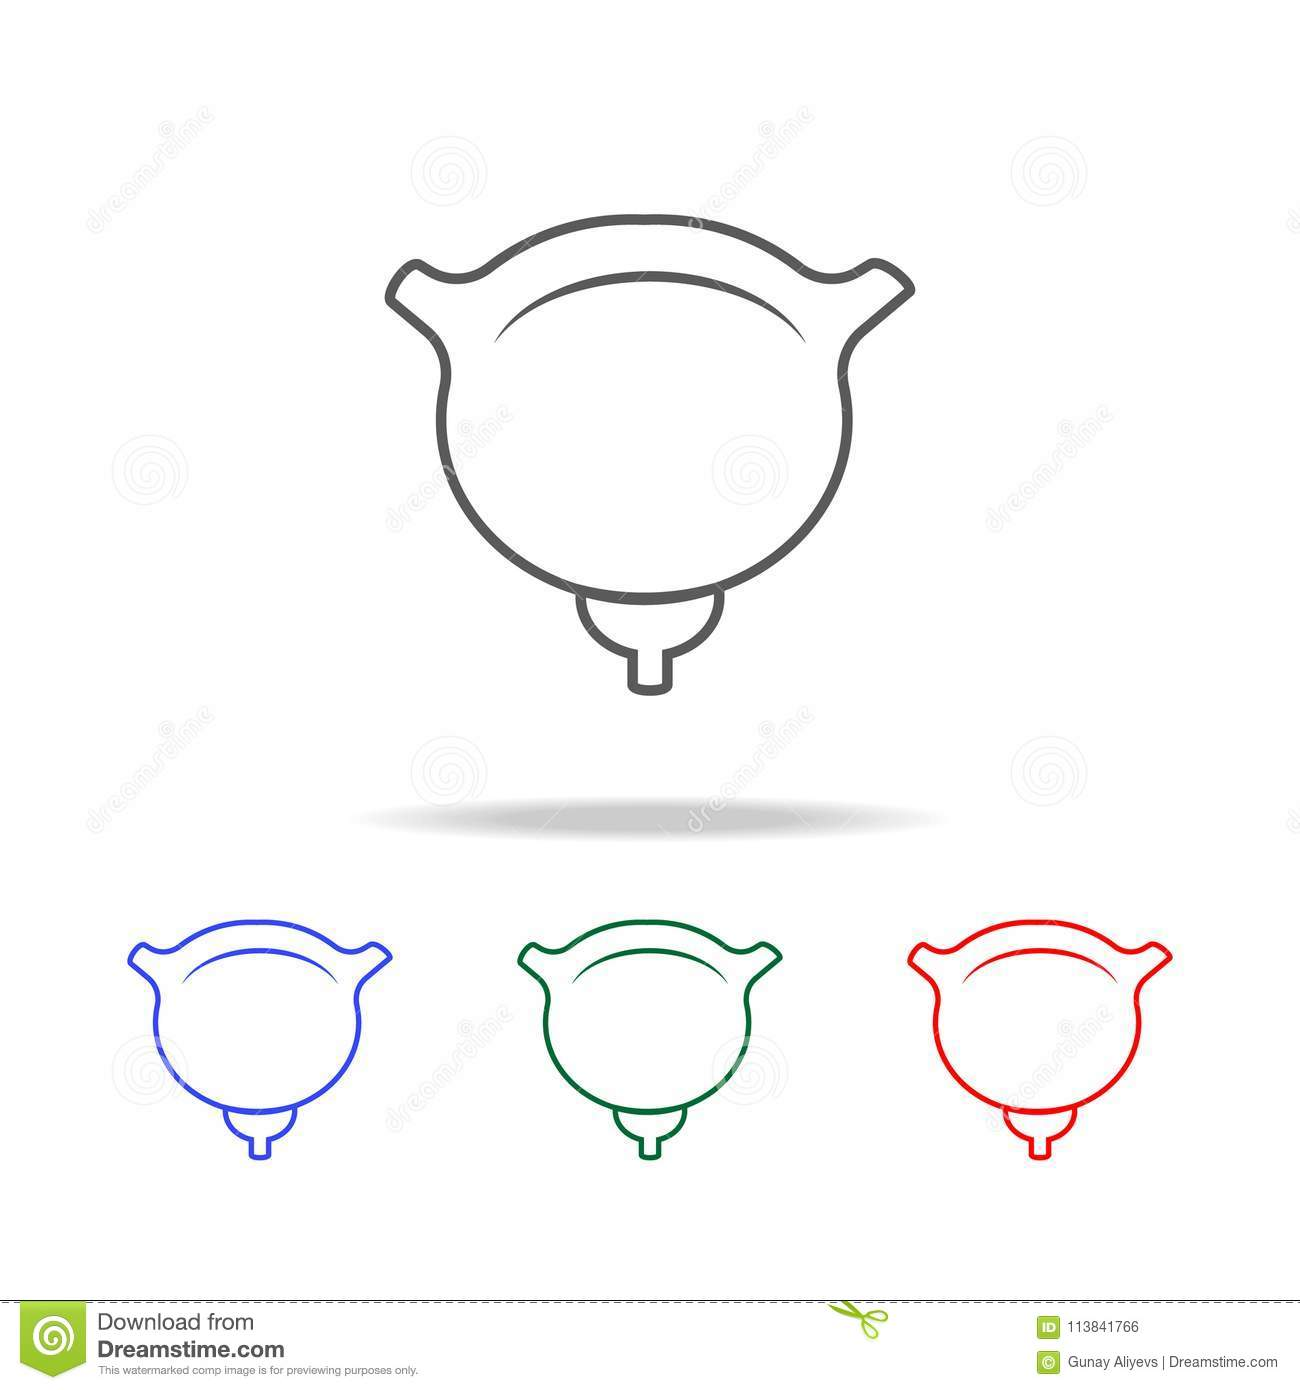 Female Urinary System Stock Illustration